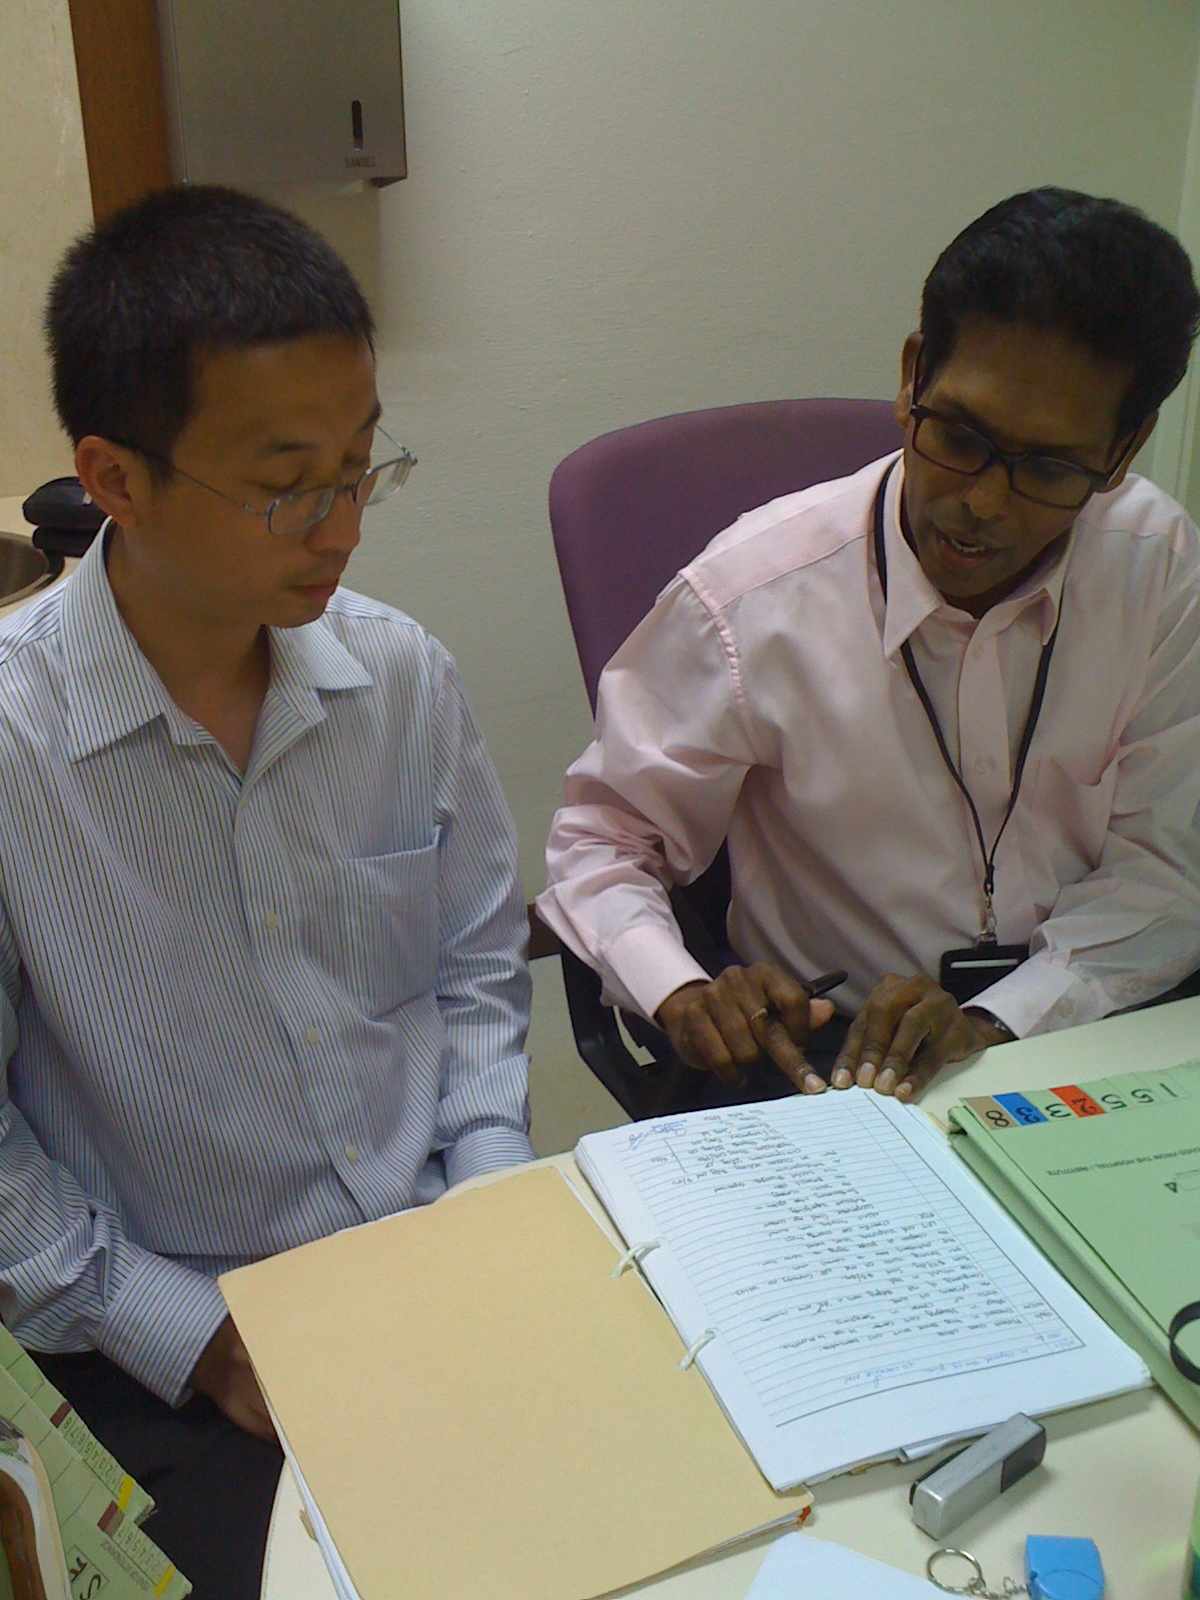 Two male nursing students review notes in a notebook at a desk